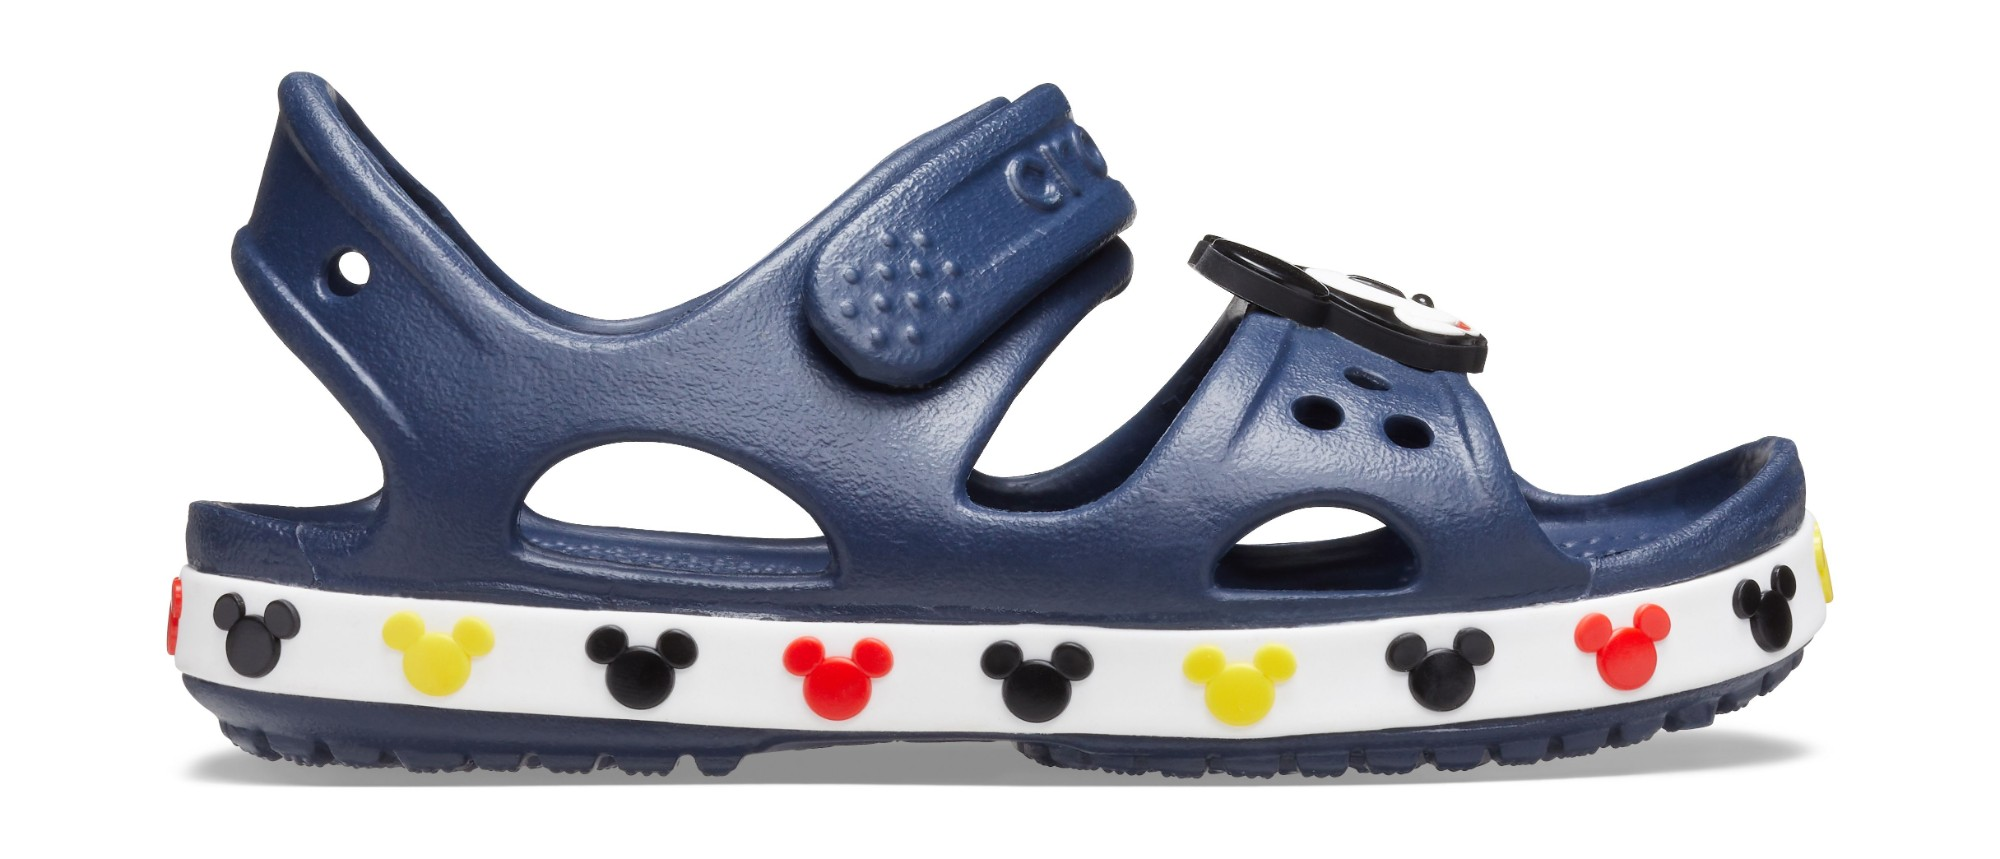 Crocs™ Kids Fun Lab Crocband II Mickey Mouse Sandal Navy 24